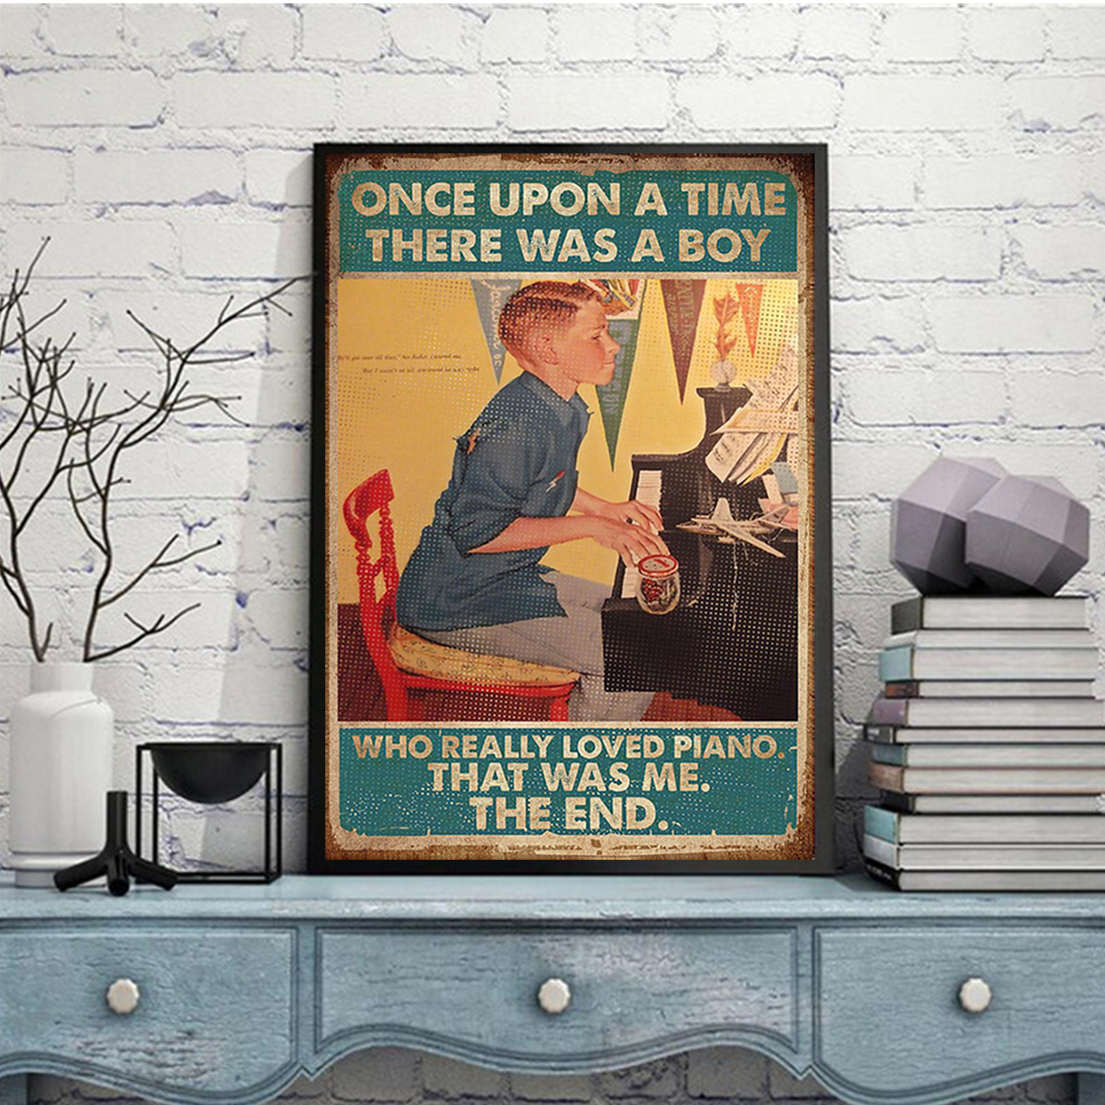 Once upon a time there was a boy who really loved piano poster A1